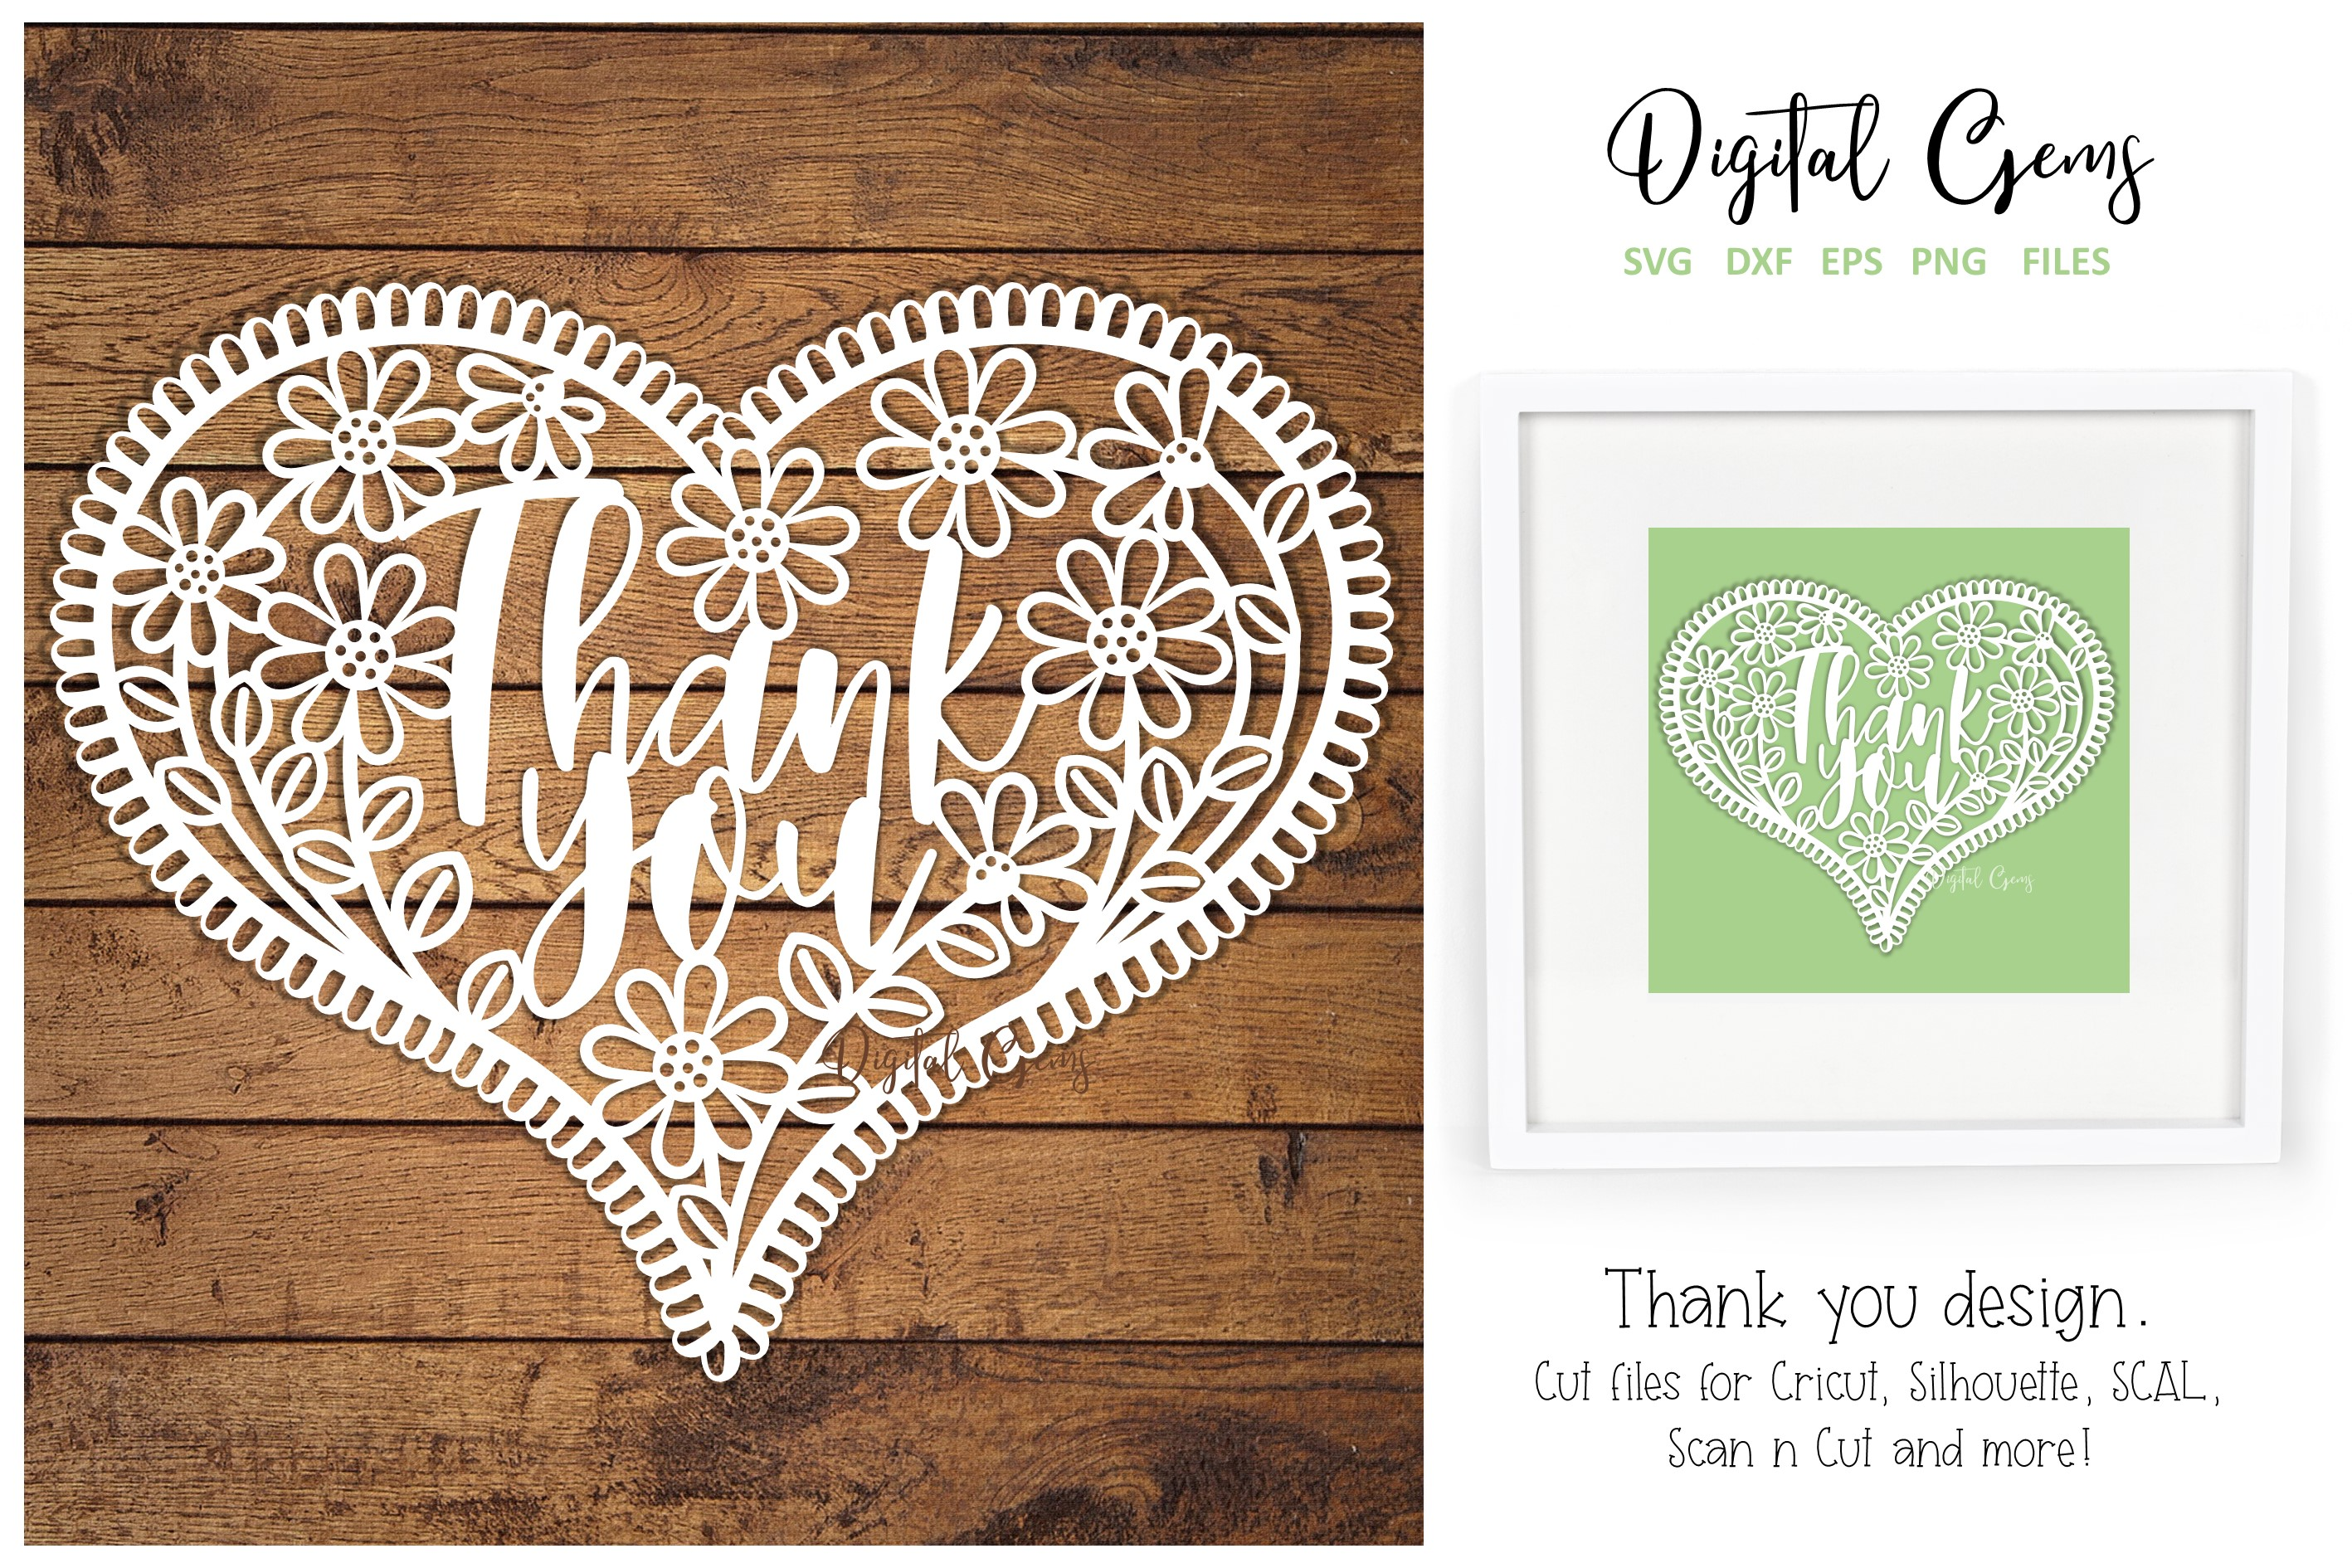 Thank You Paper Cut Design Graphic By Digital Gems Creative